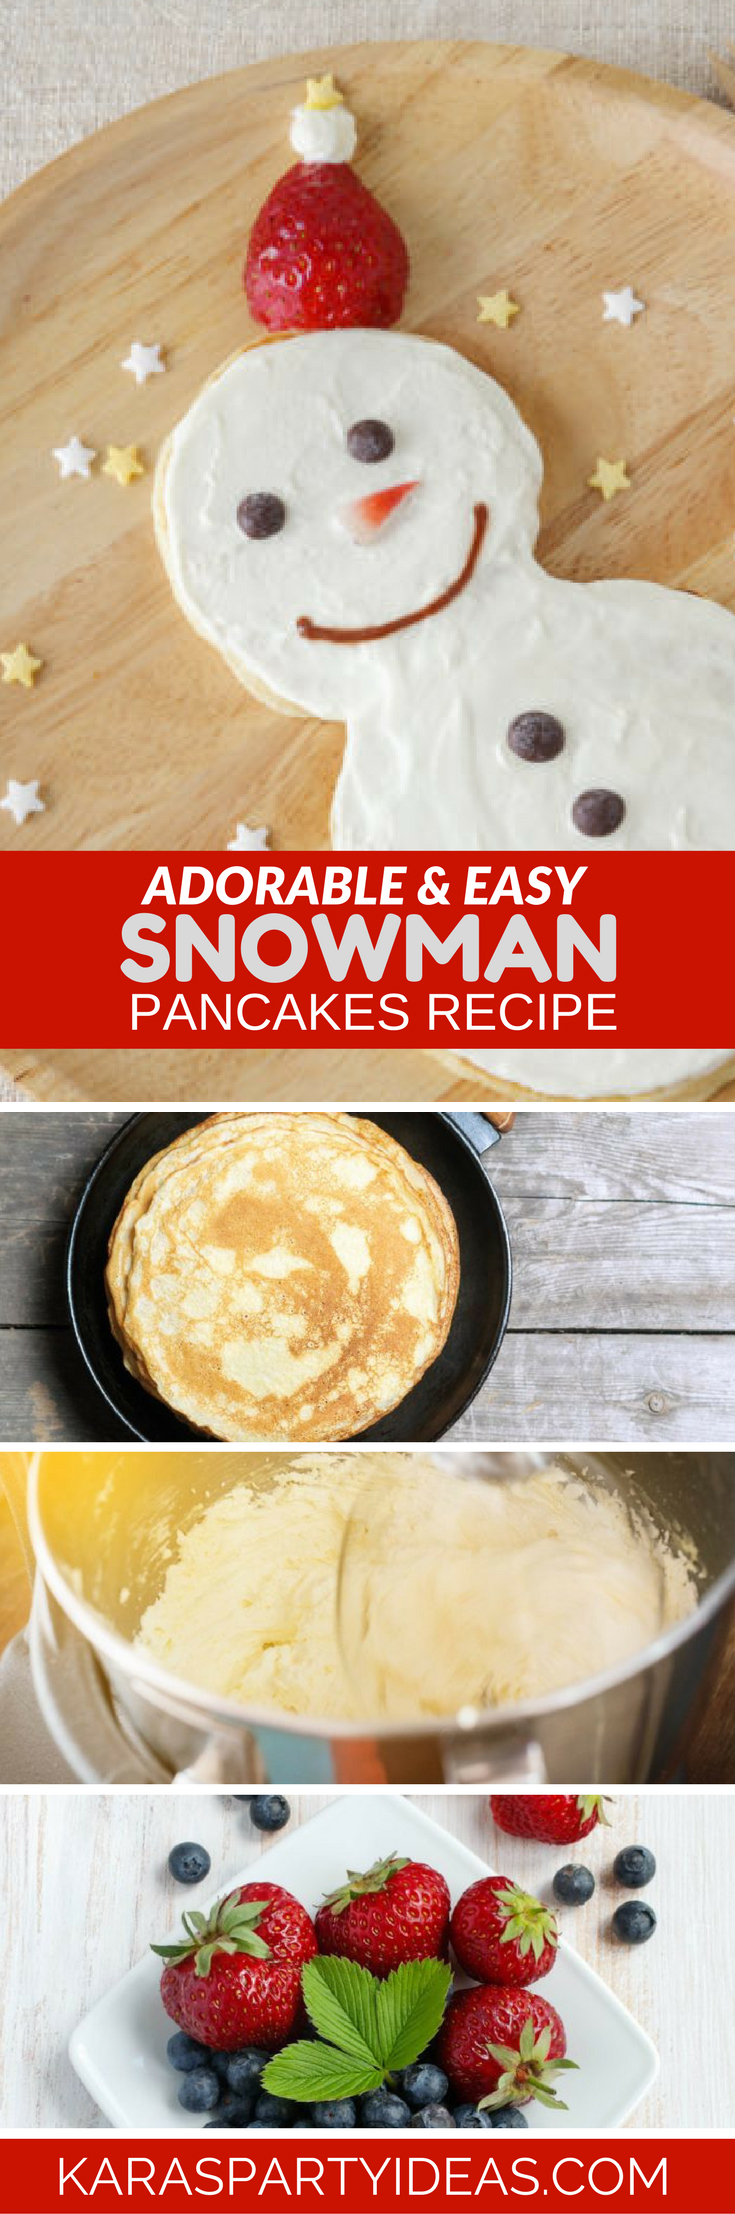 Easy and Adorable Snowman Pancake Recipe via Kara's Party Ideas - KarasPartyIdeas.com (1)